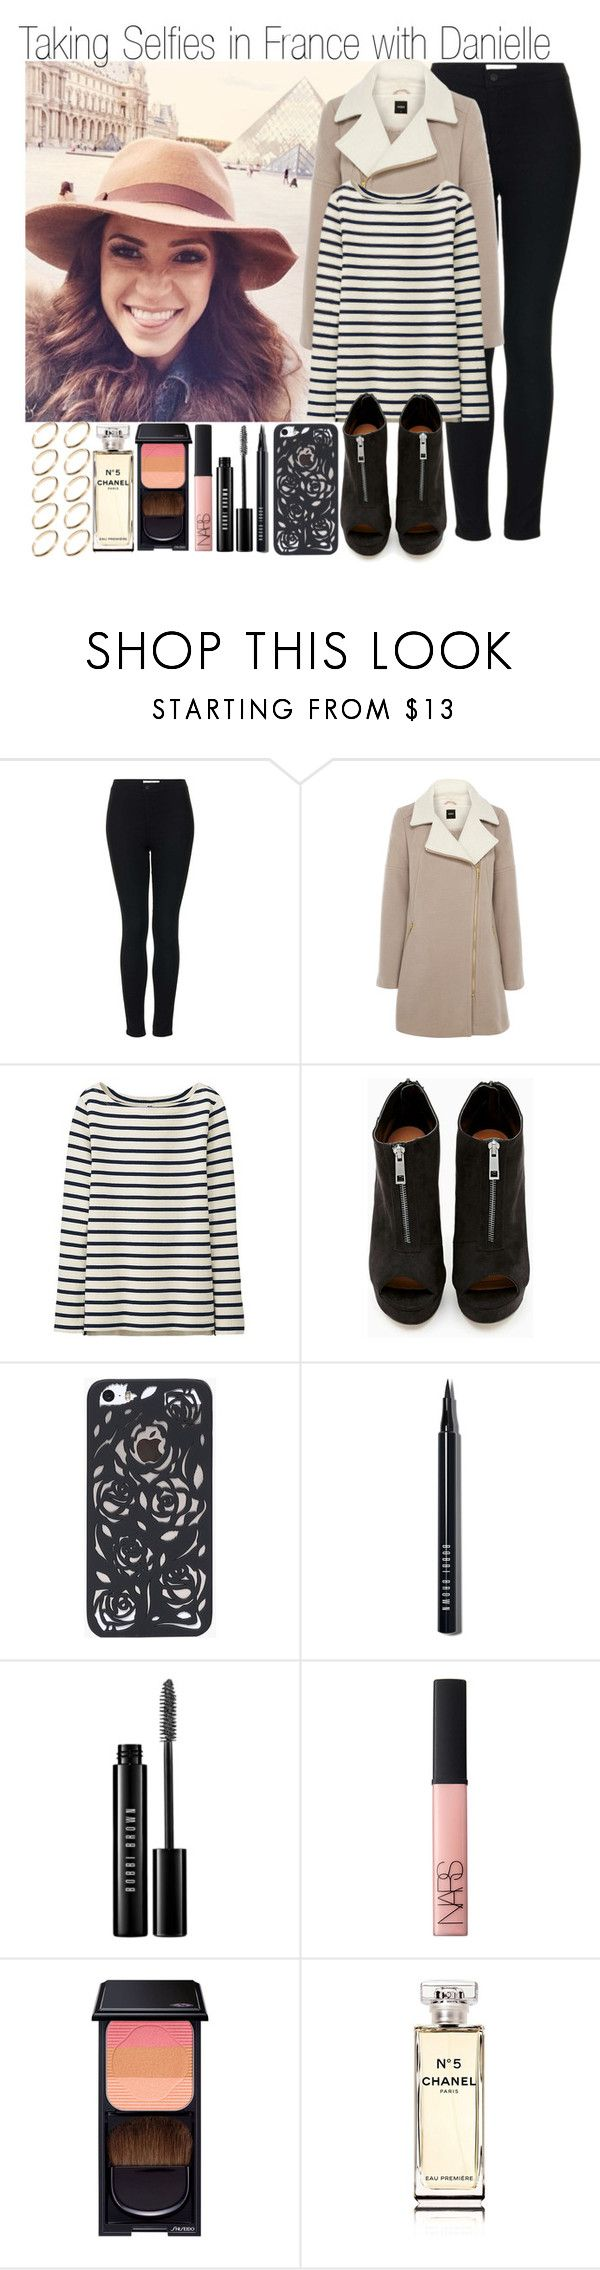 """Taking Selfies in France with Danielle"" by elise-22 ❤ liked on Polyvore featuring Topshop, Oasis, Uniqlo, Shoe Cult, Bobbi Brown Cosmetics, NARS Cosmetics, Shiseido, Chanel, ASOS and daniellepeazer"